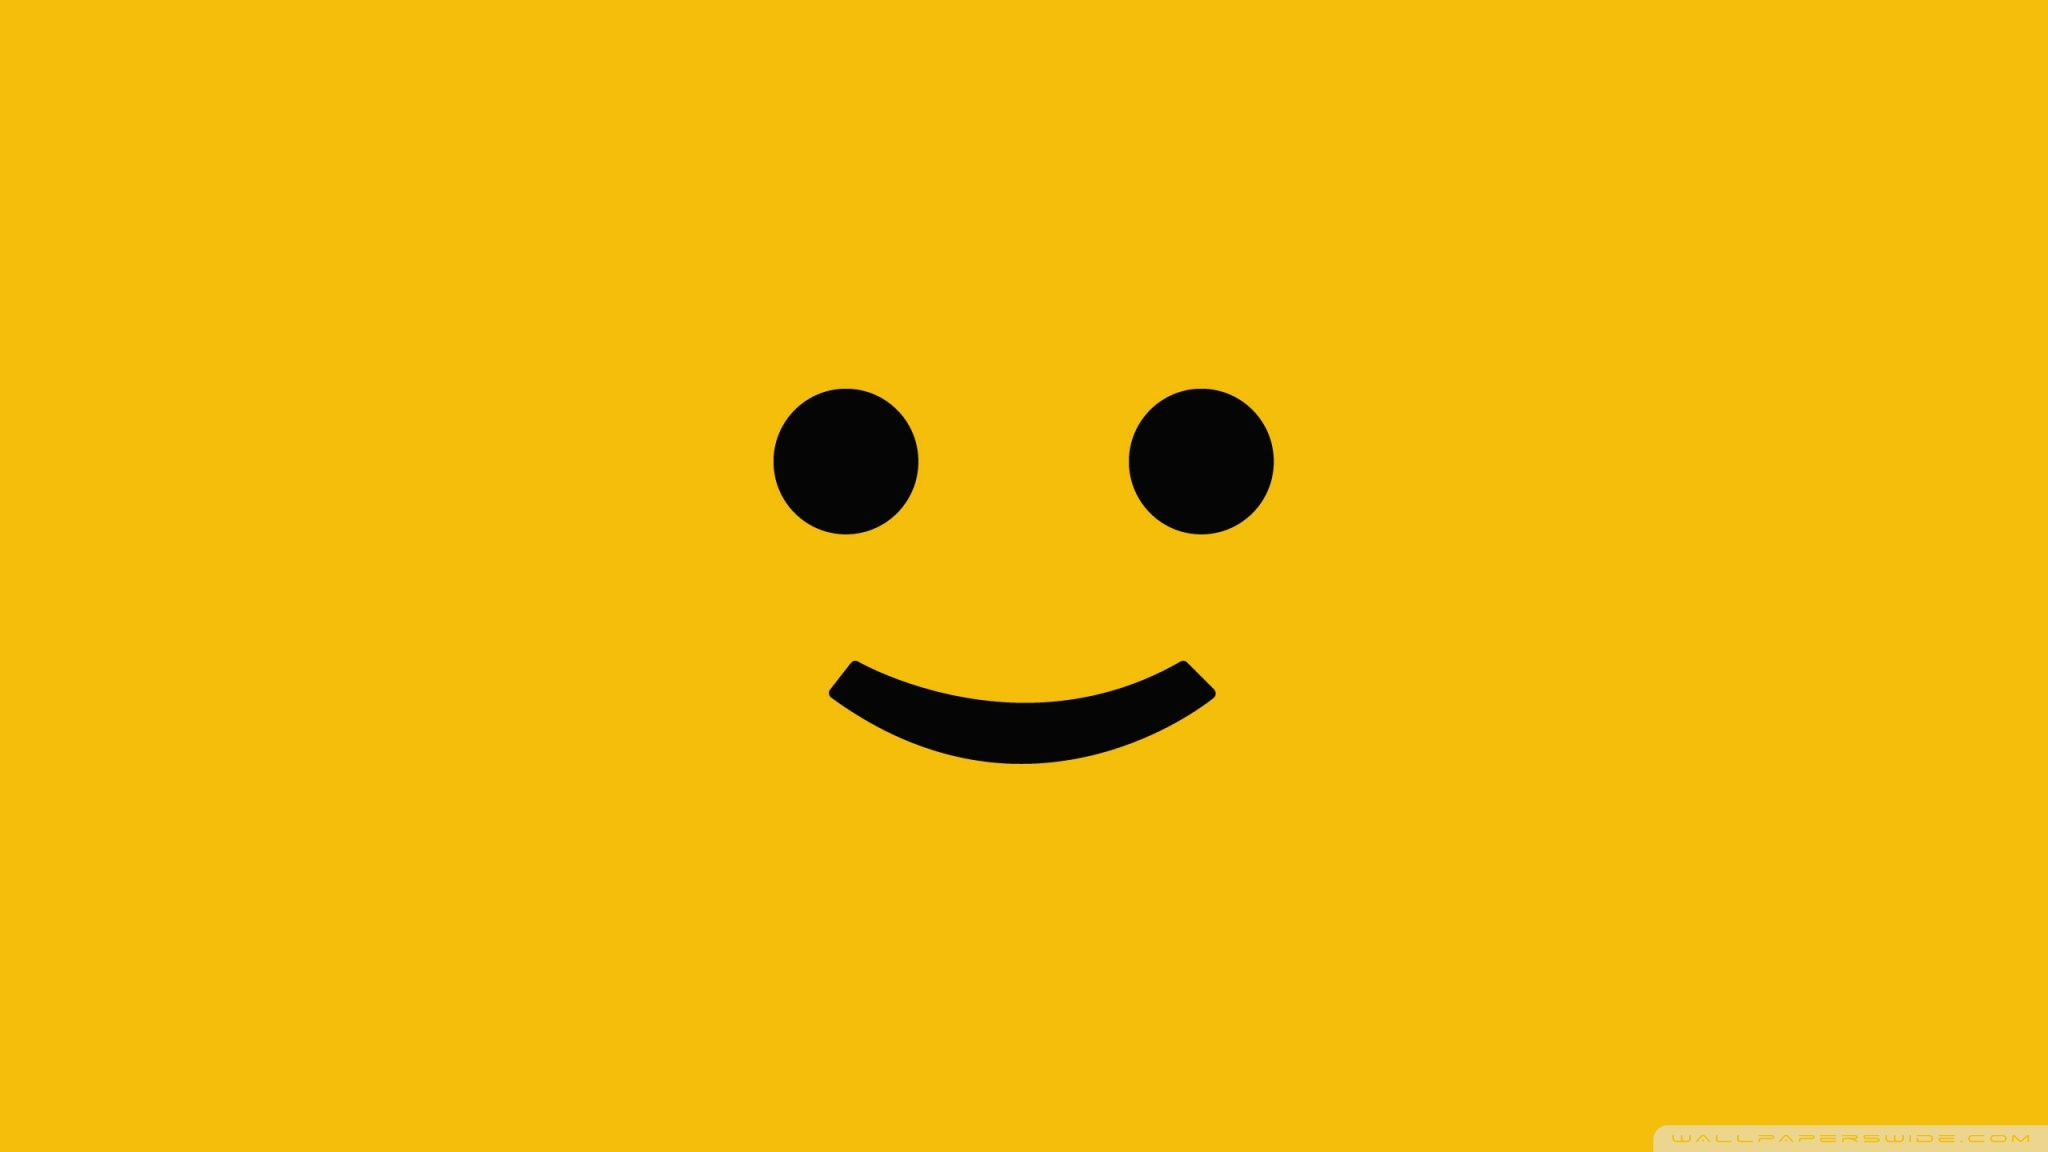 Smiley Face On A Yellow Background